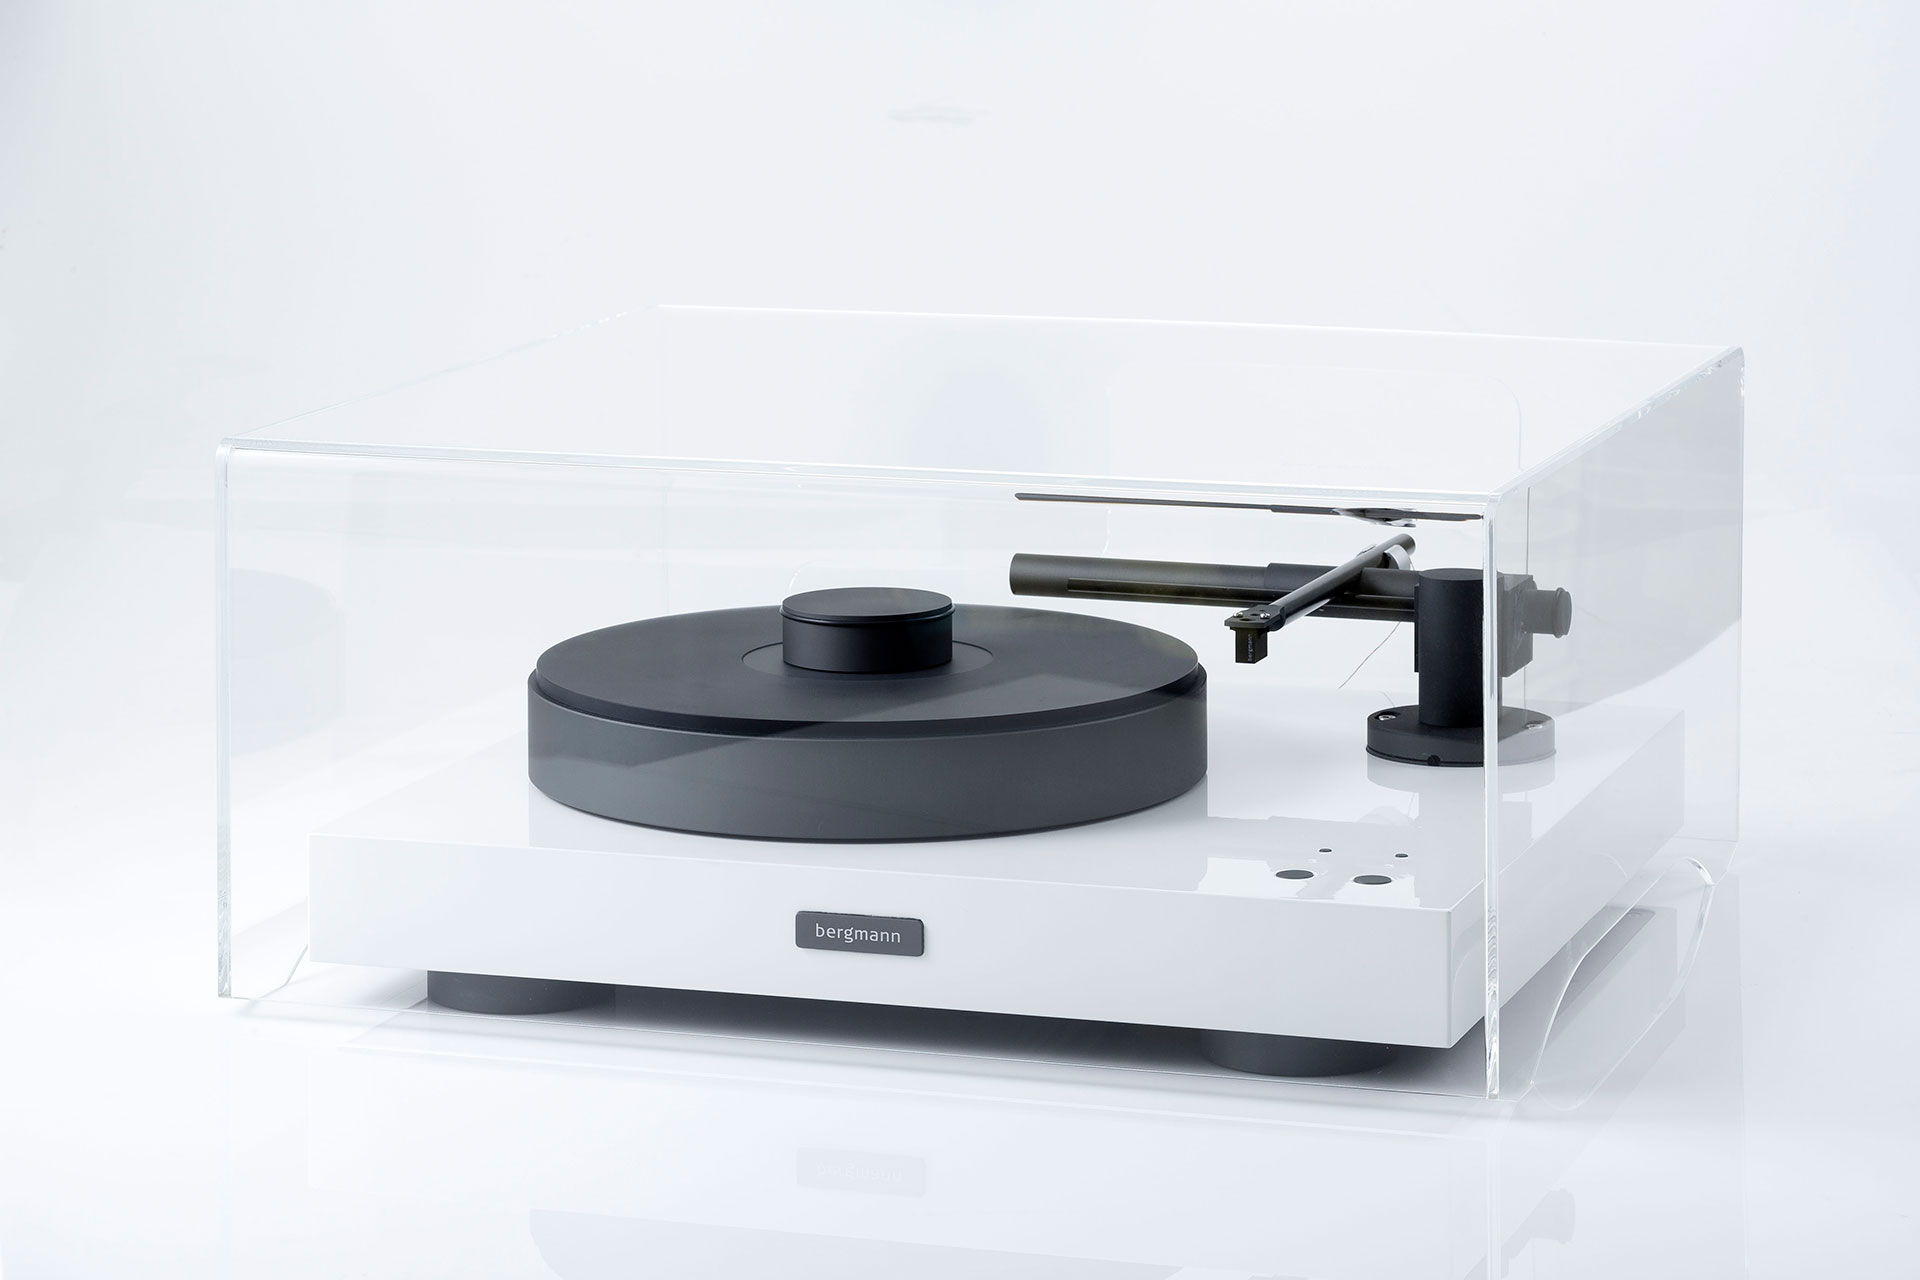 Full Acrylic Dustcover For Bergmann Audio Turntables